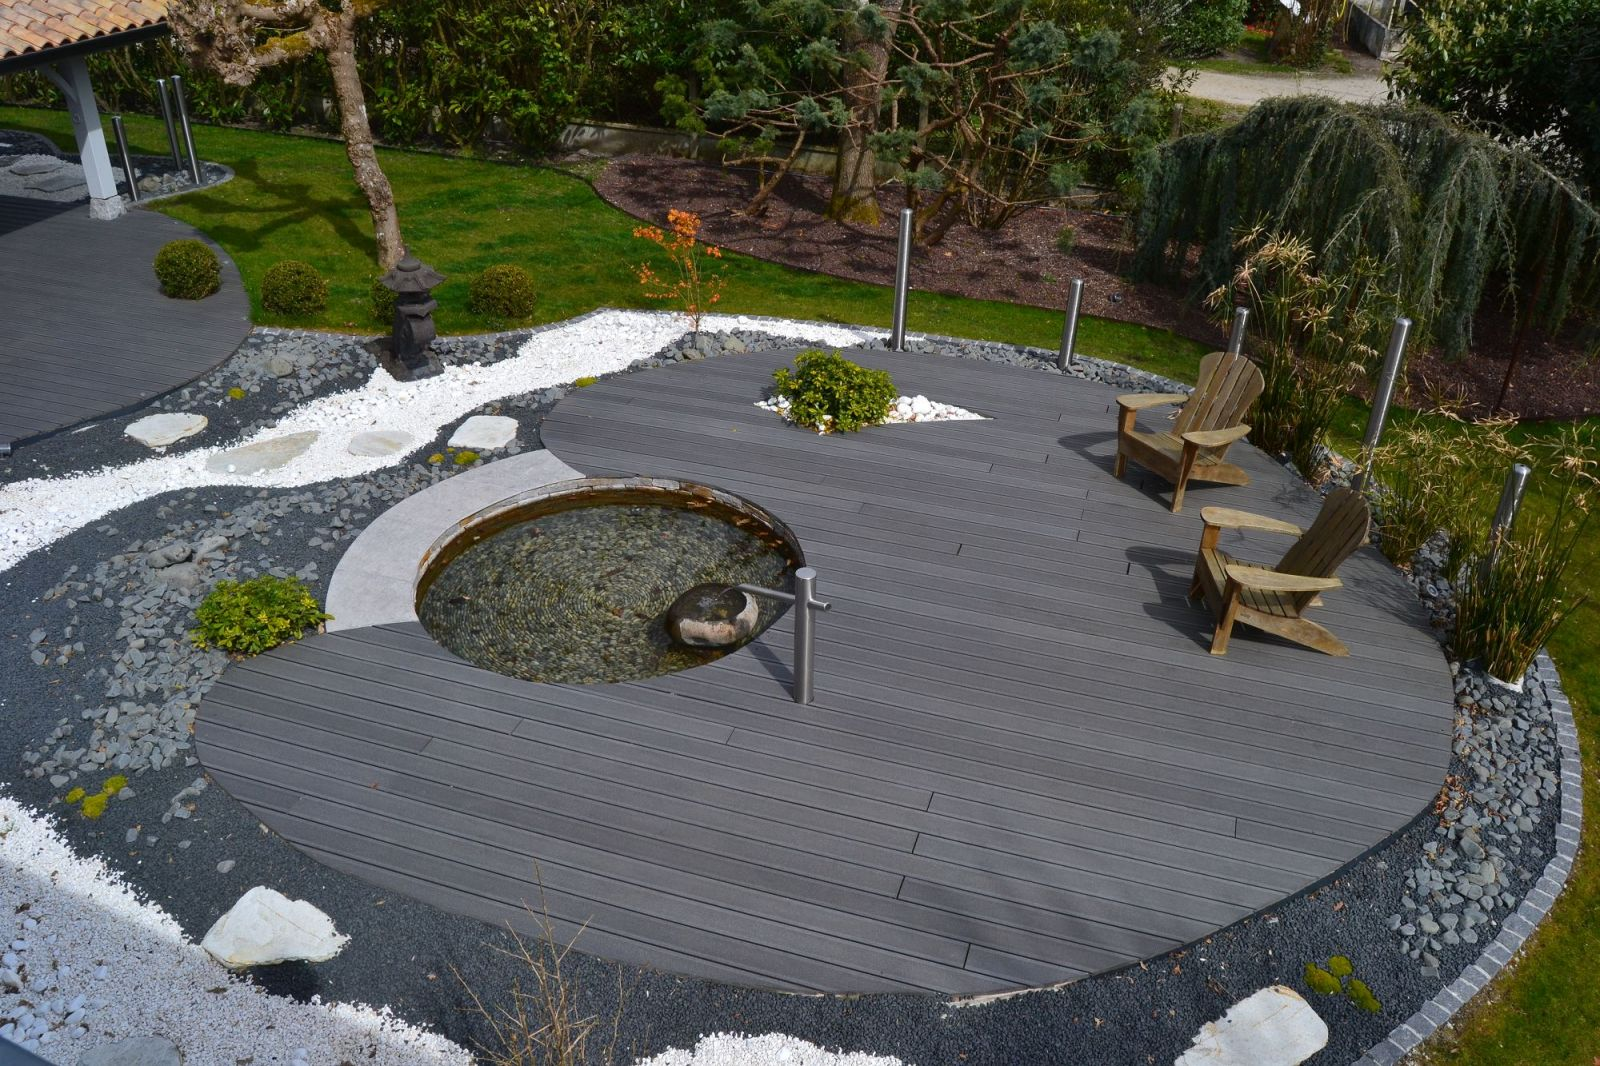 Conception et am nagement d 39 un jardin zen par un for Agencement terrasse jardin